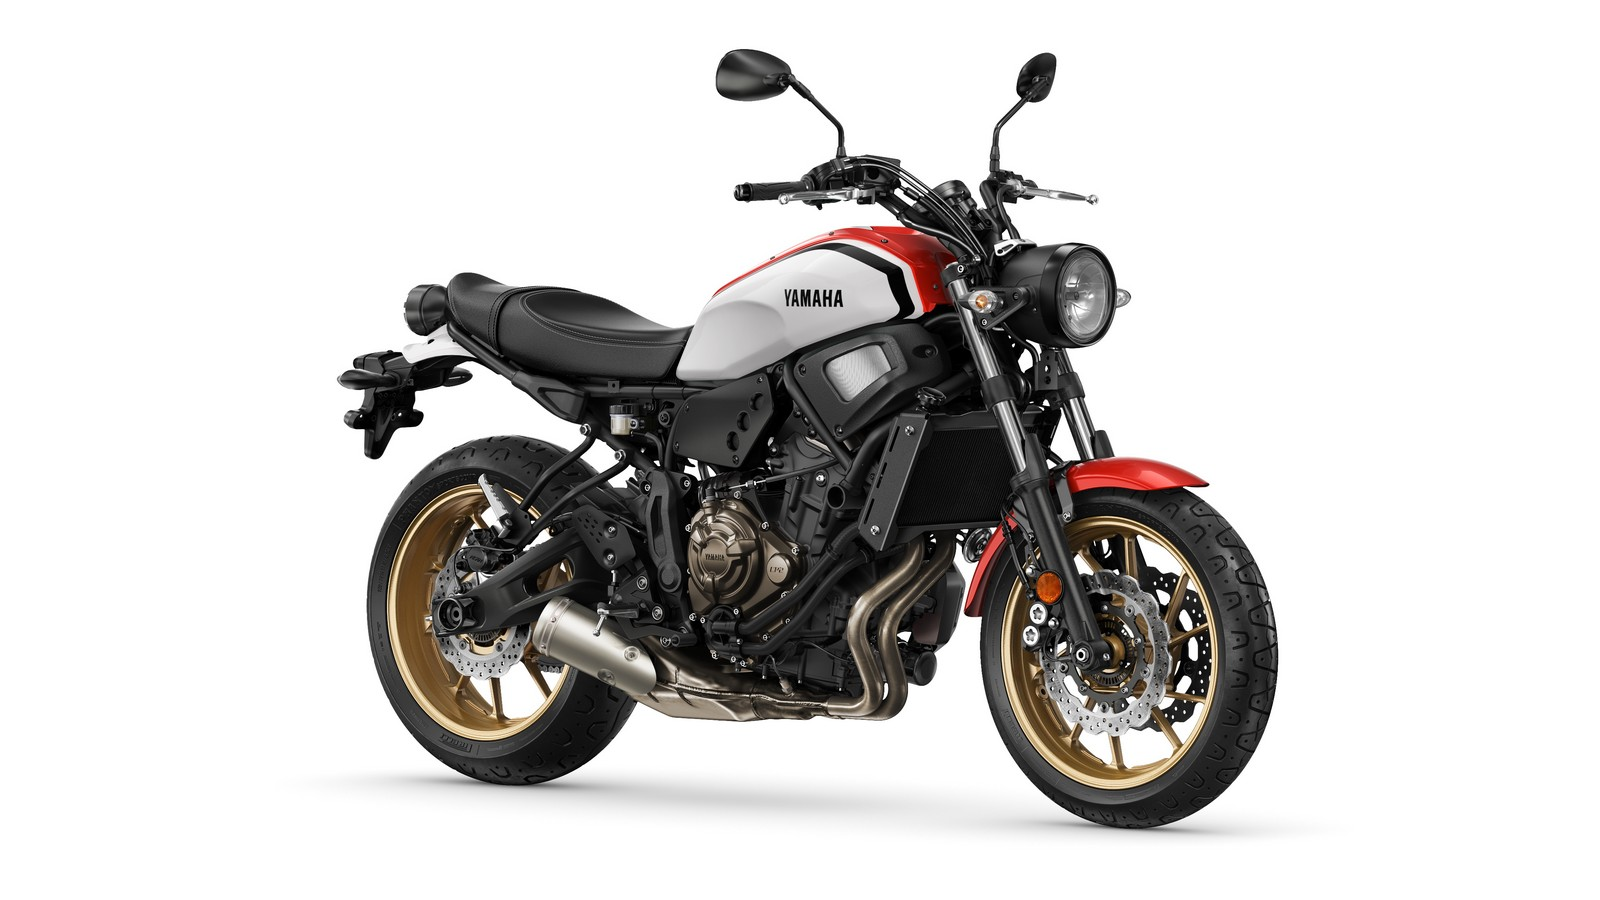 2020 YAM XS700 EU VRC1 STU 001 03 preview